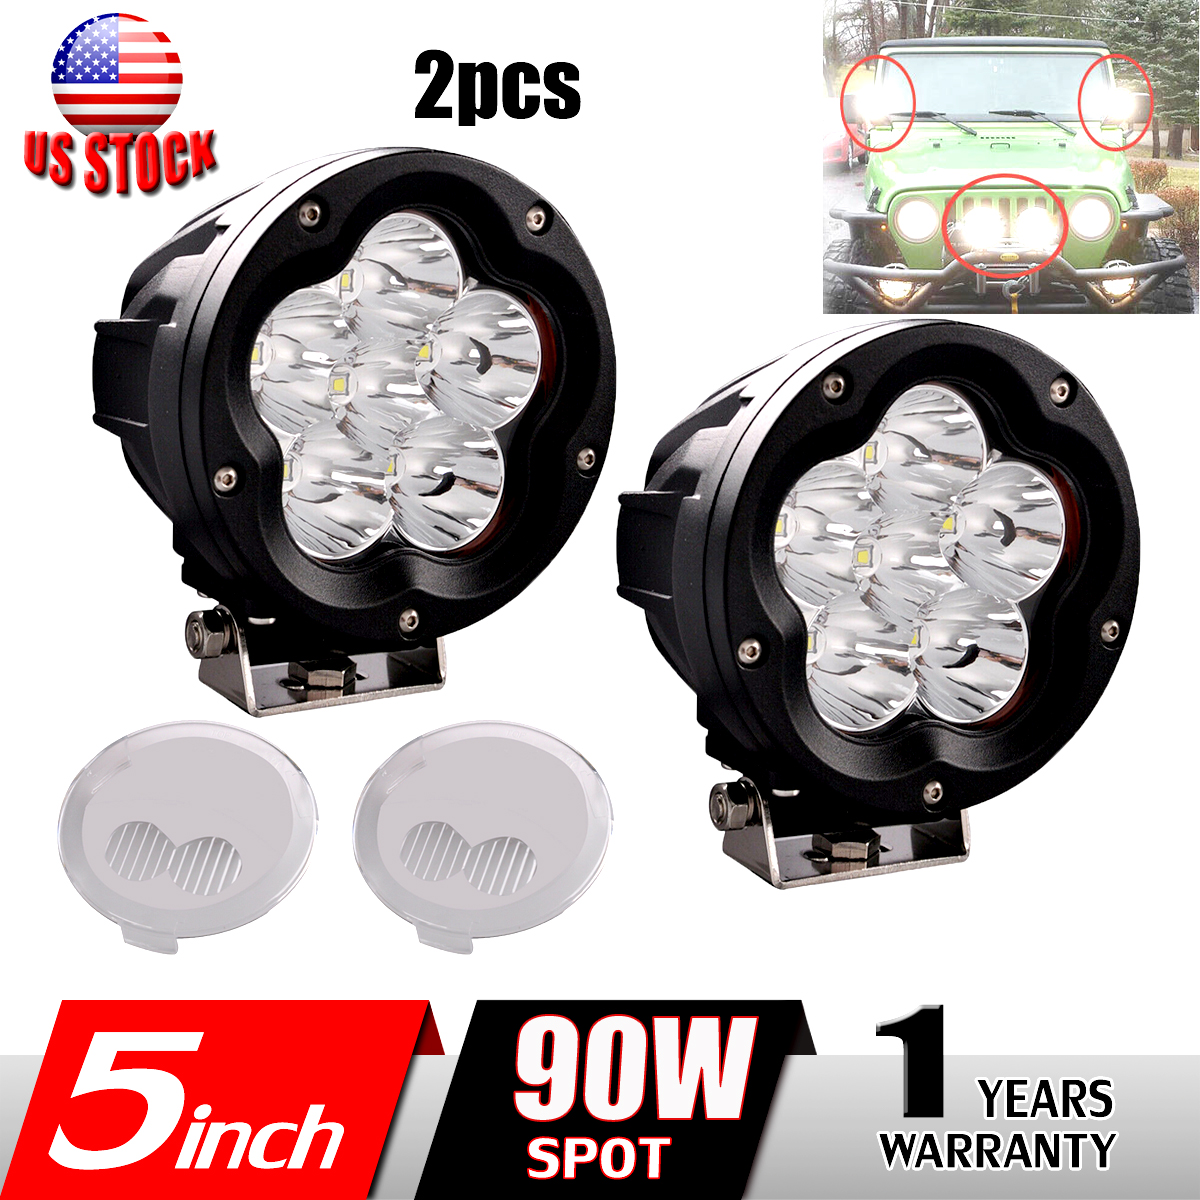 Details About 2x 5 Inch 90w Round Led Work Light Spot Driving Fog Lamp Offroad Headlight 4x4